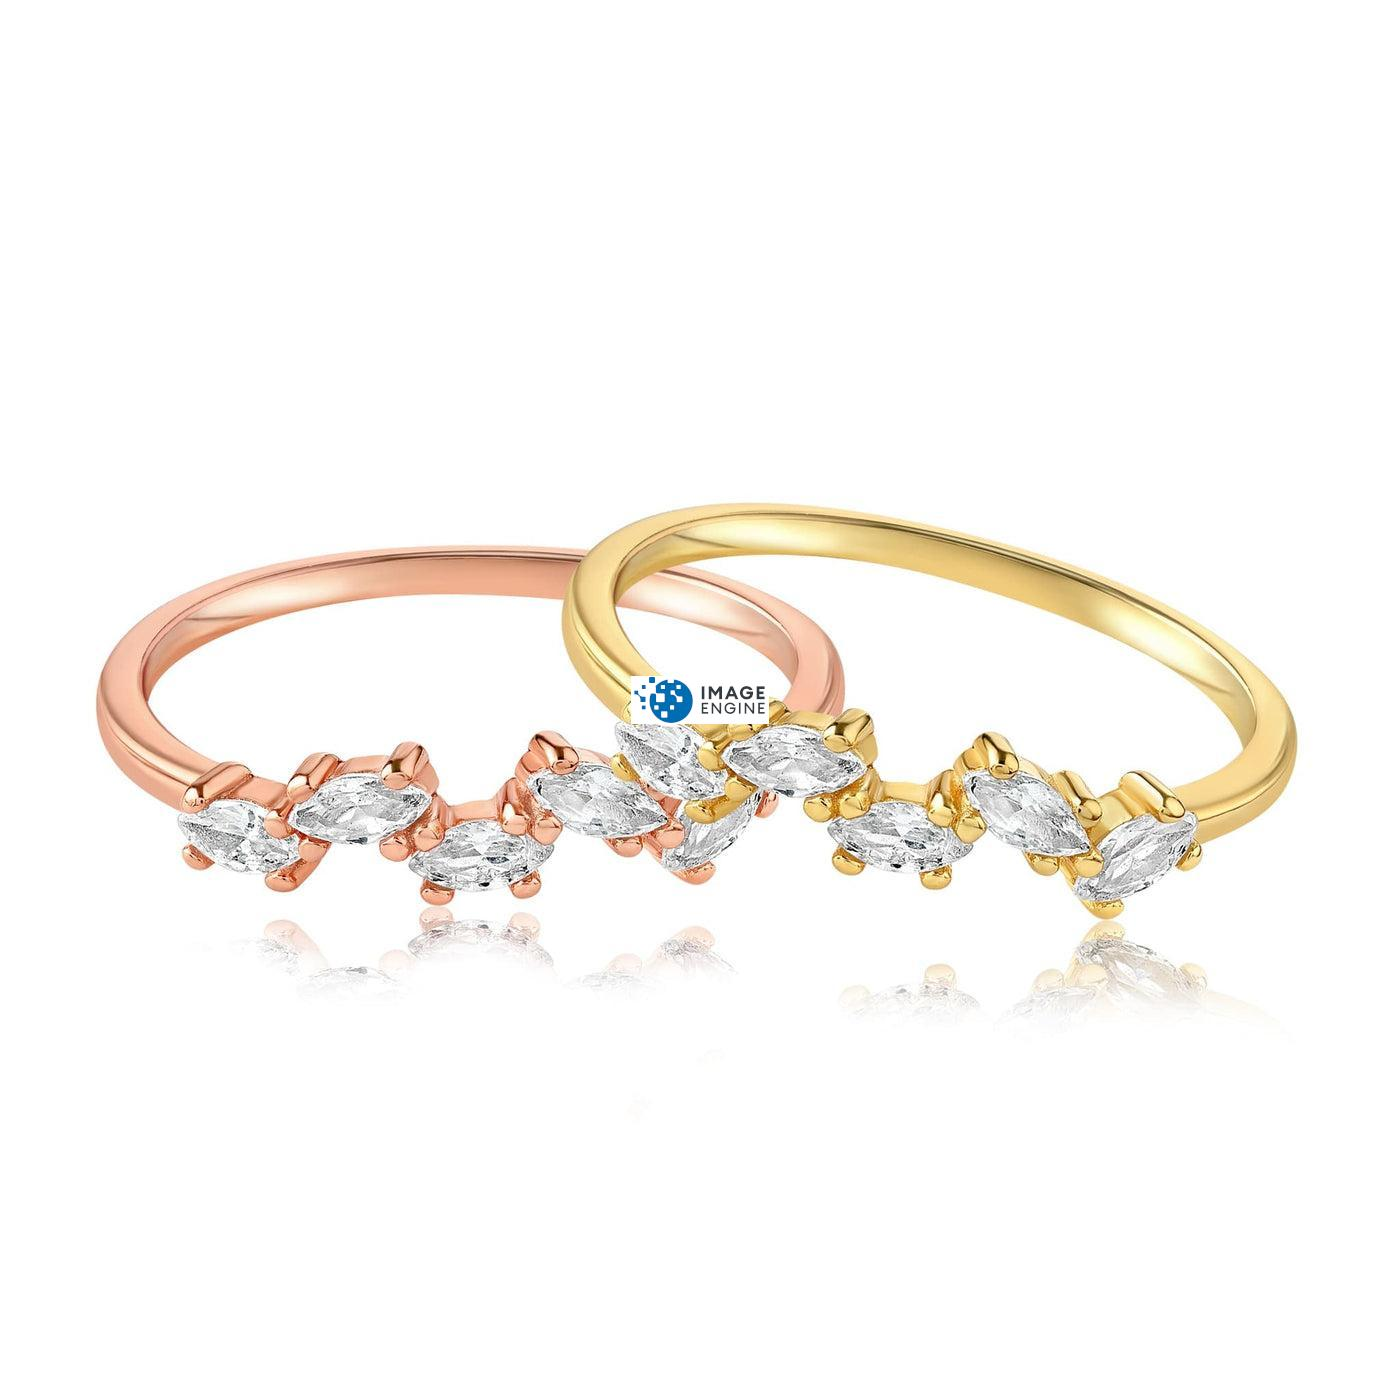 Genna Round Cut Ring - Front View Side by Side - 18K Rose Gold Vermeil and 18K Yellow Gold Vermeil